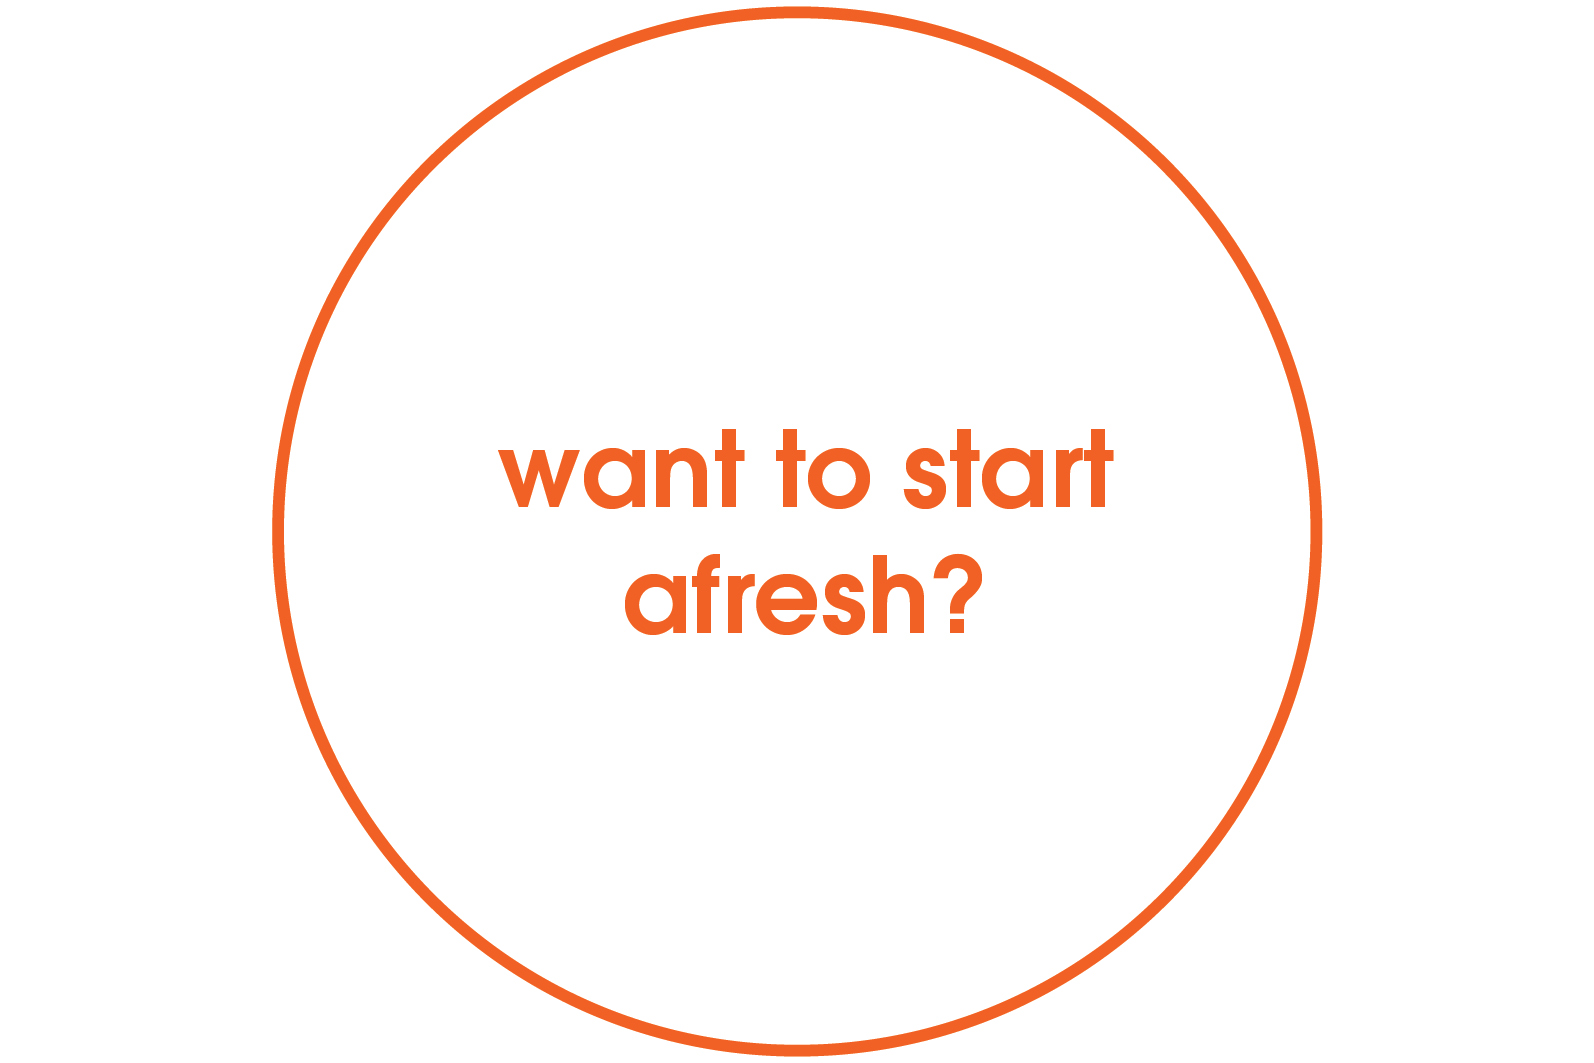 want to start afresh